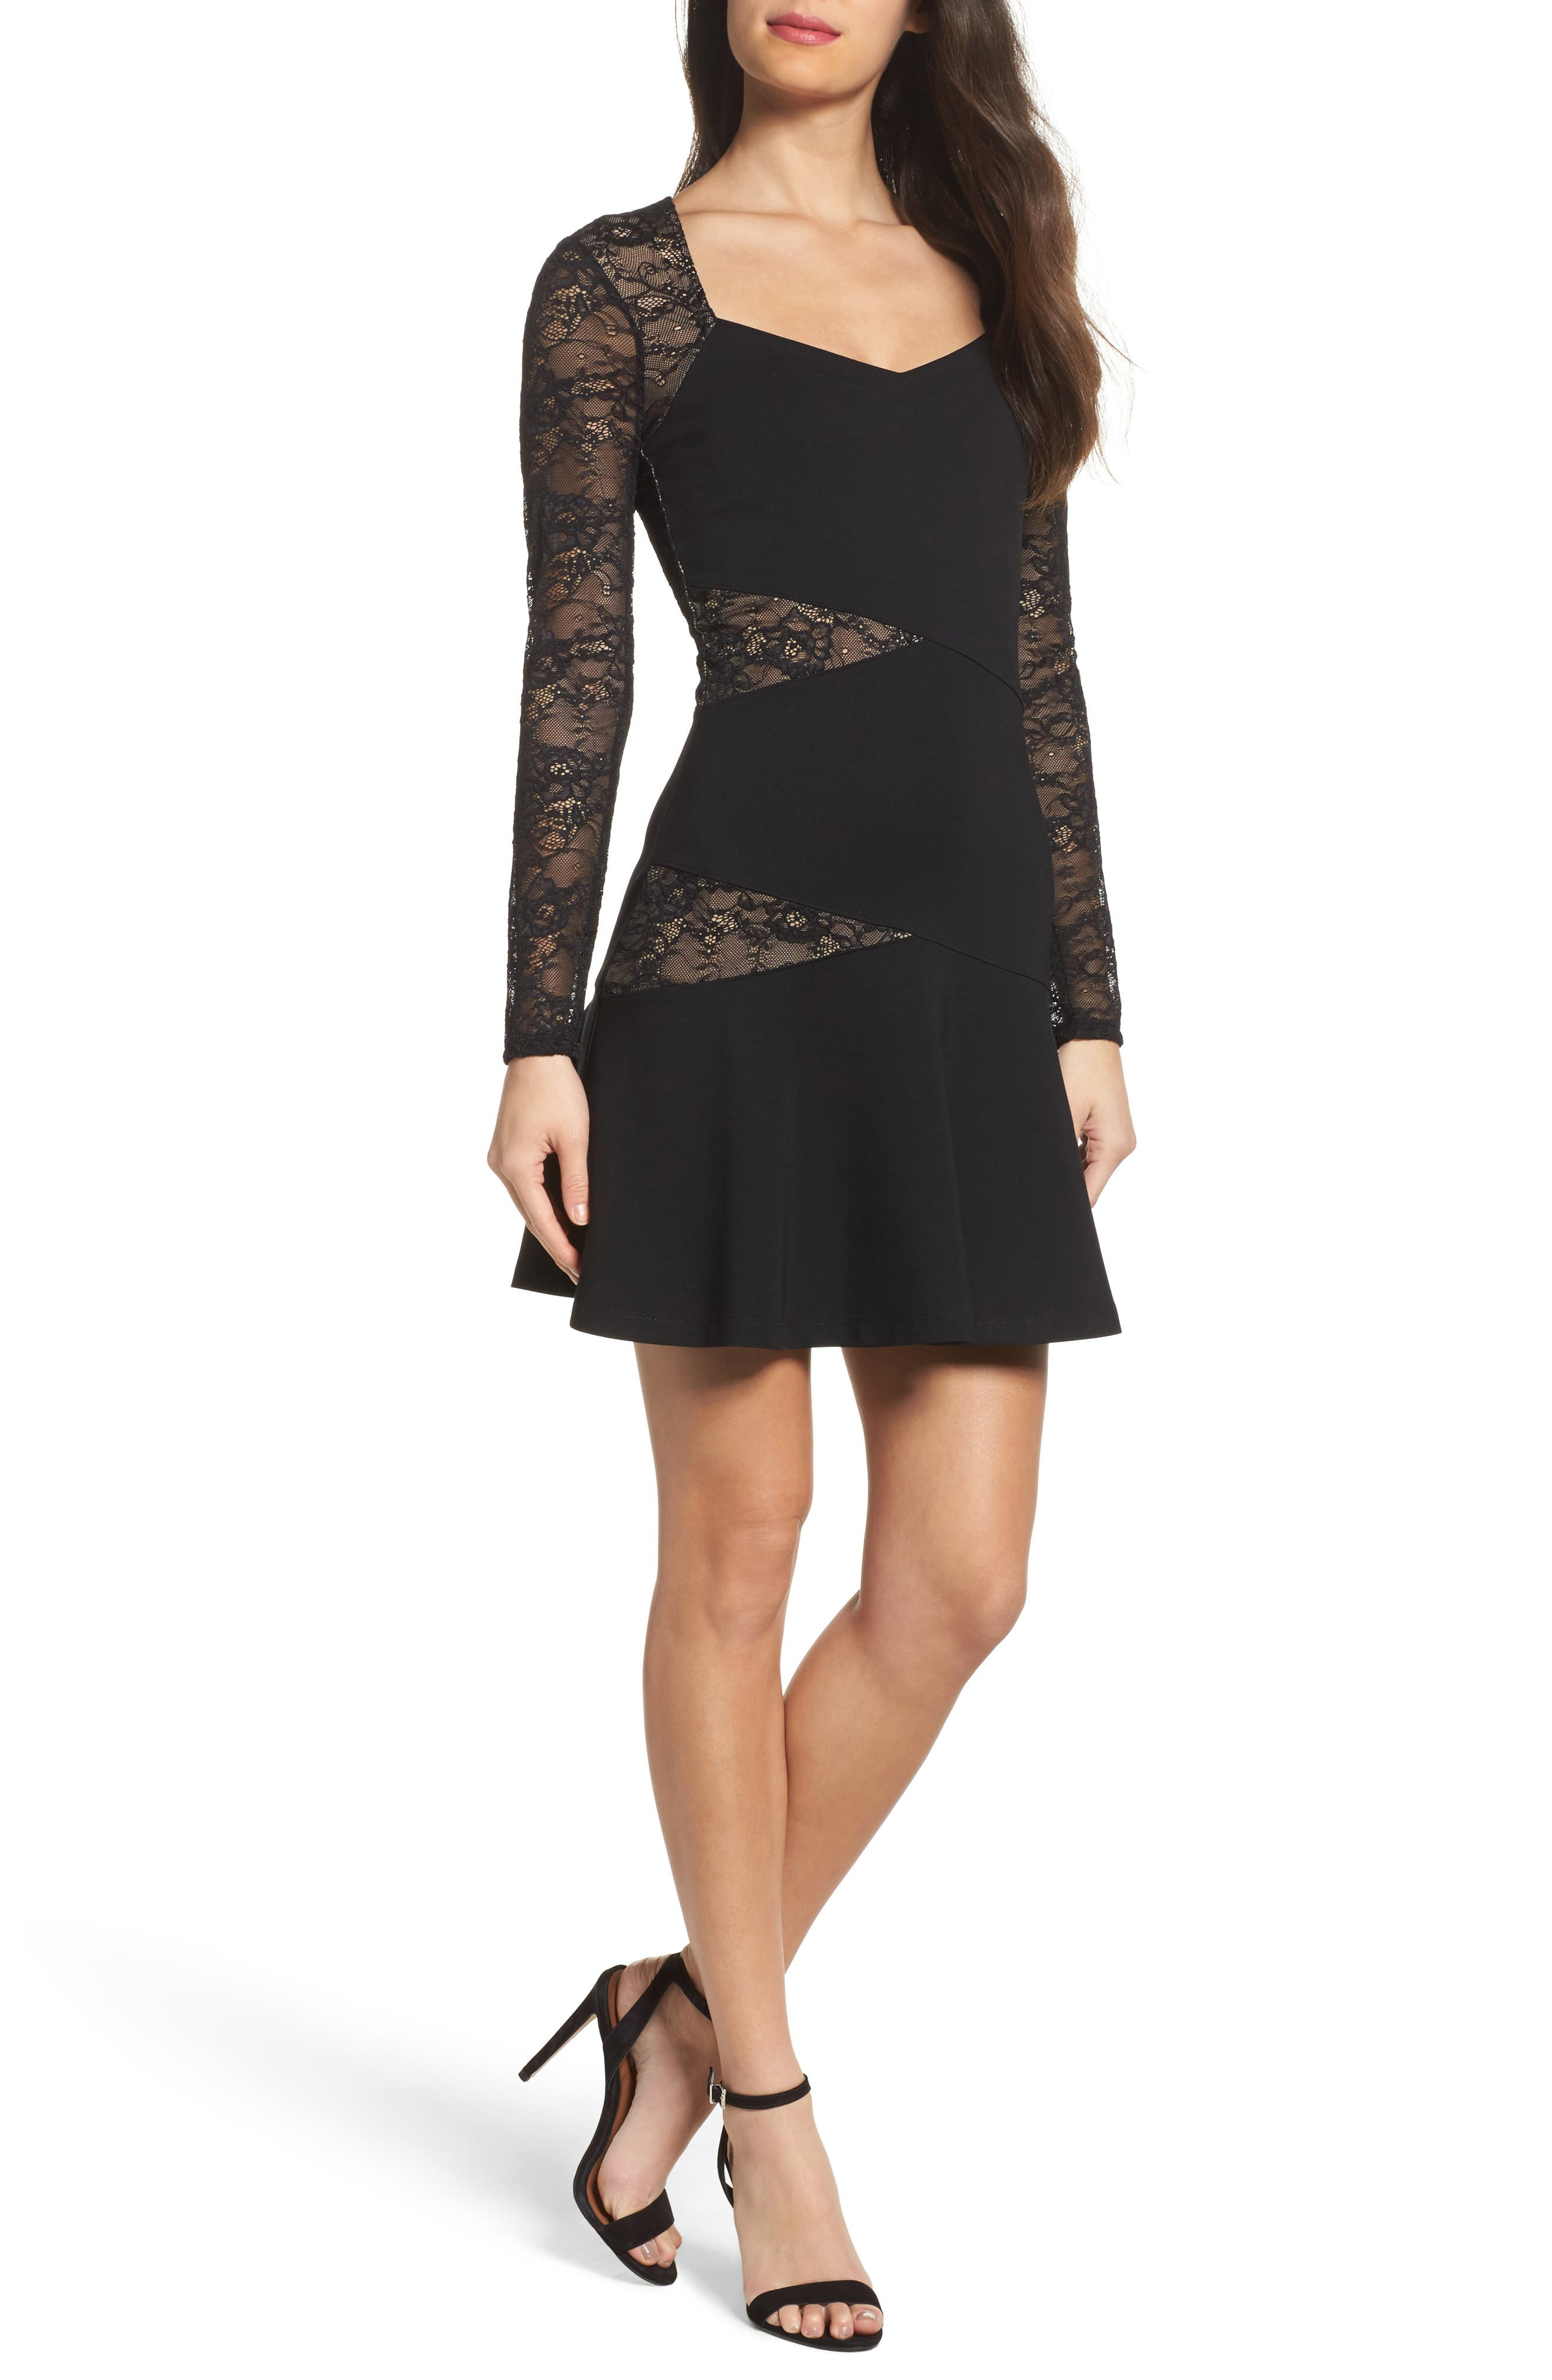 L'Arc Ponte Knit Fit & Flare Dress,                         Main,                         color, Black